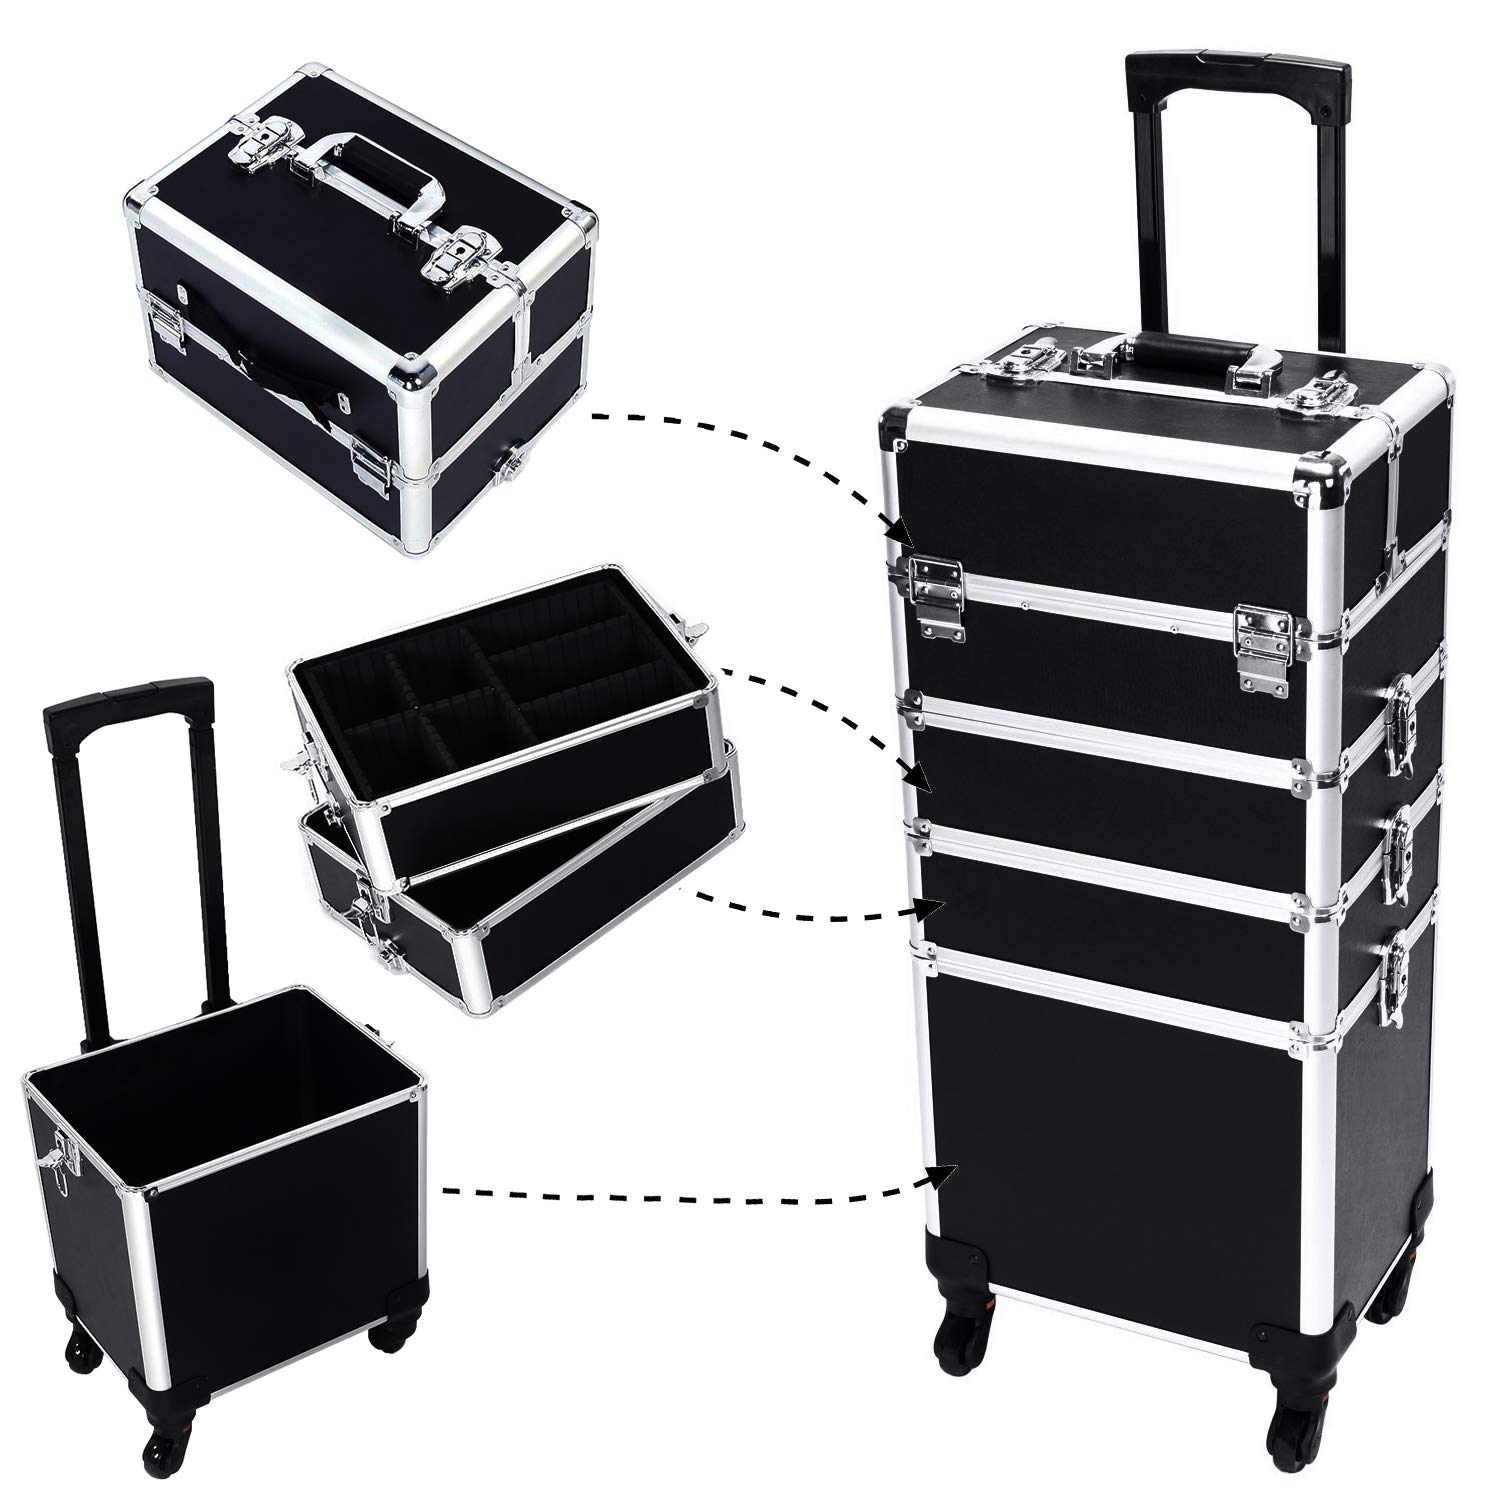 4-in-1 Aluminum Rolling Makeup Train Cases Trolley with 4-wheel and 2 Keys Professional Multi-function Artist Beauty Train Case Cosmetic Organizer Box Lift Handle Lock W/shoulder Straps